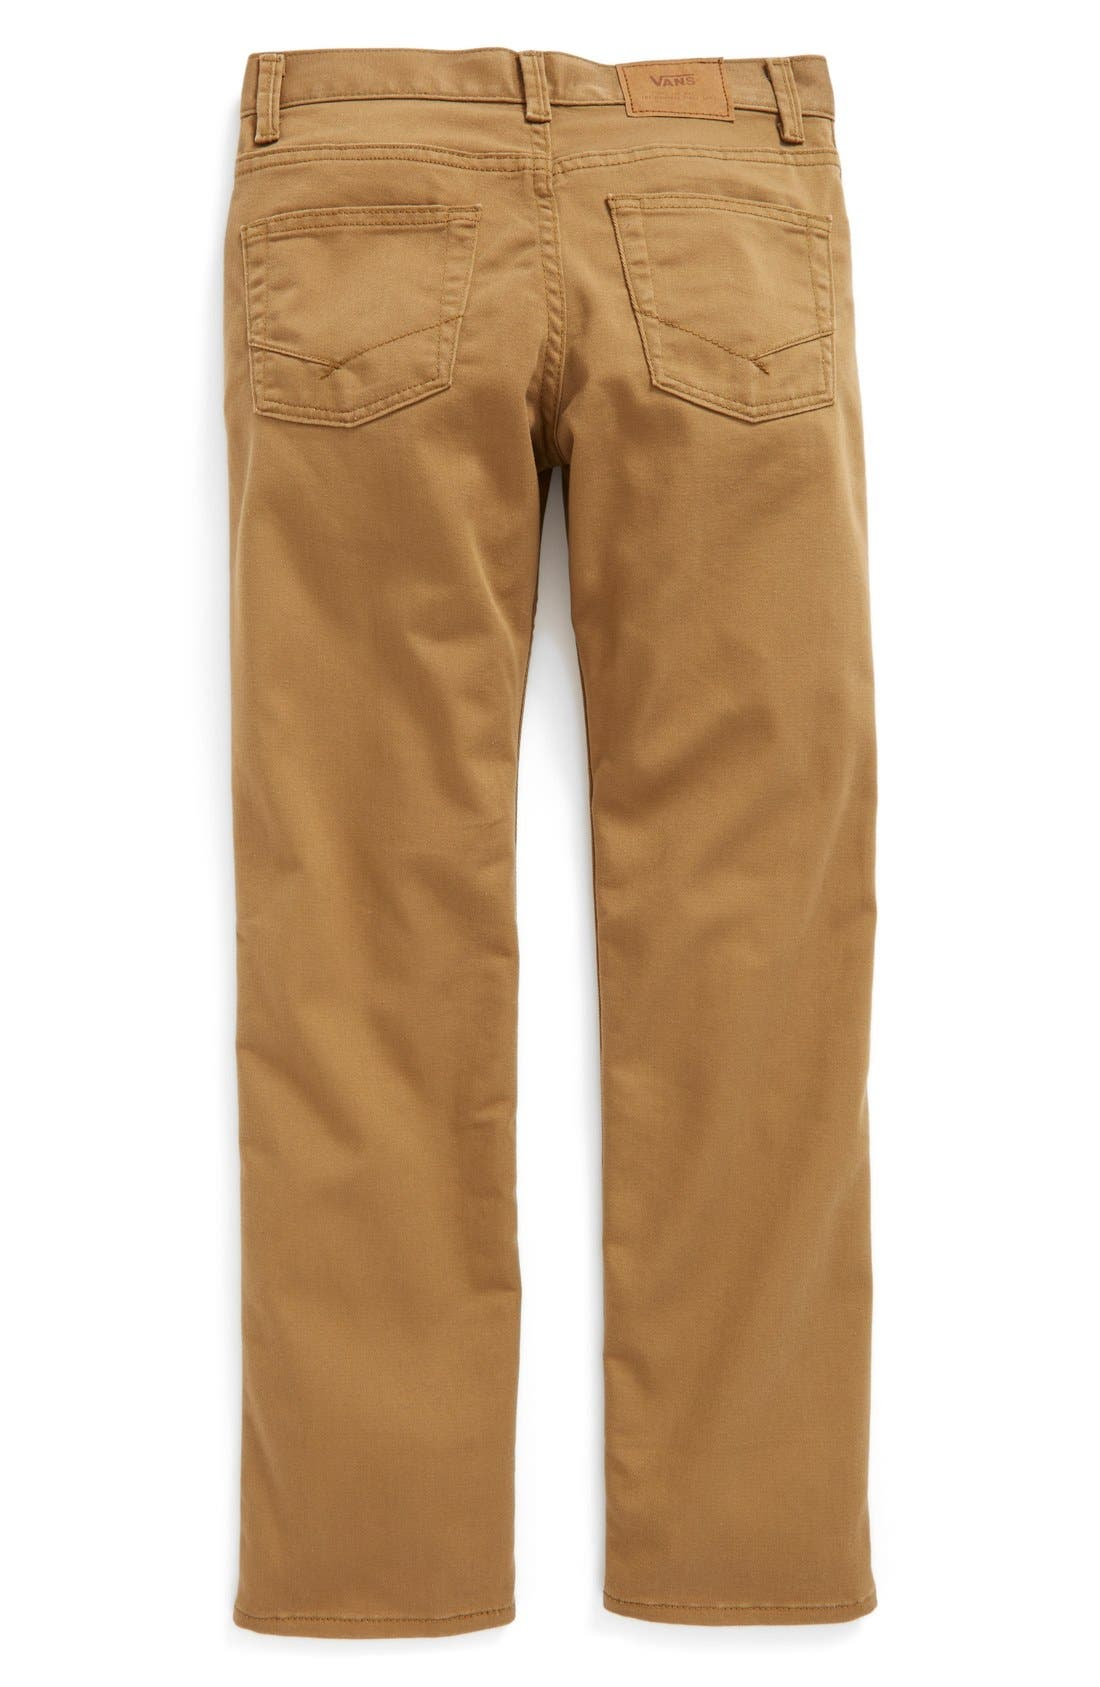 'V56 Standard AV Covina' Pants,                             Alternate thumbnail 2, color,                             Dirt